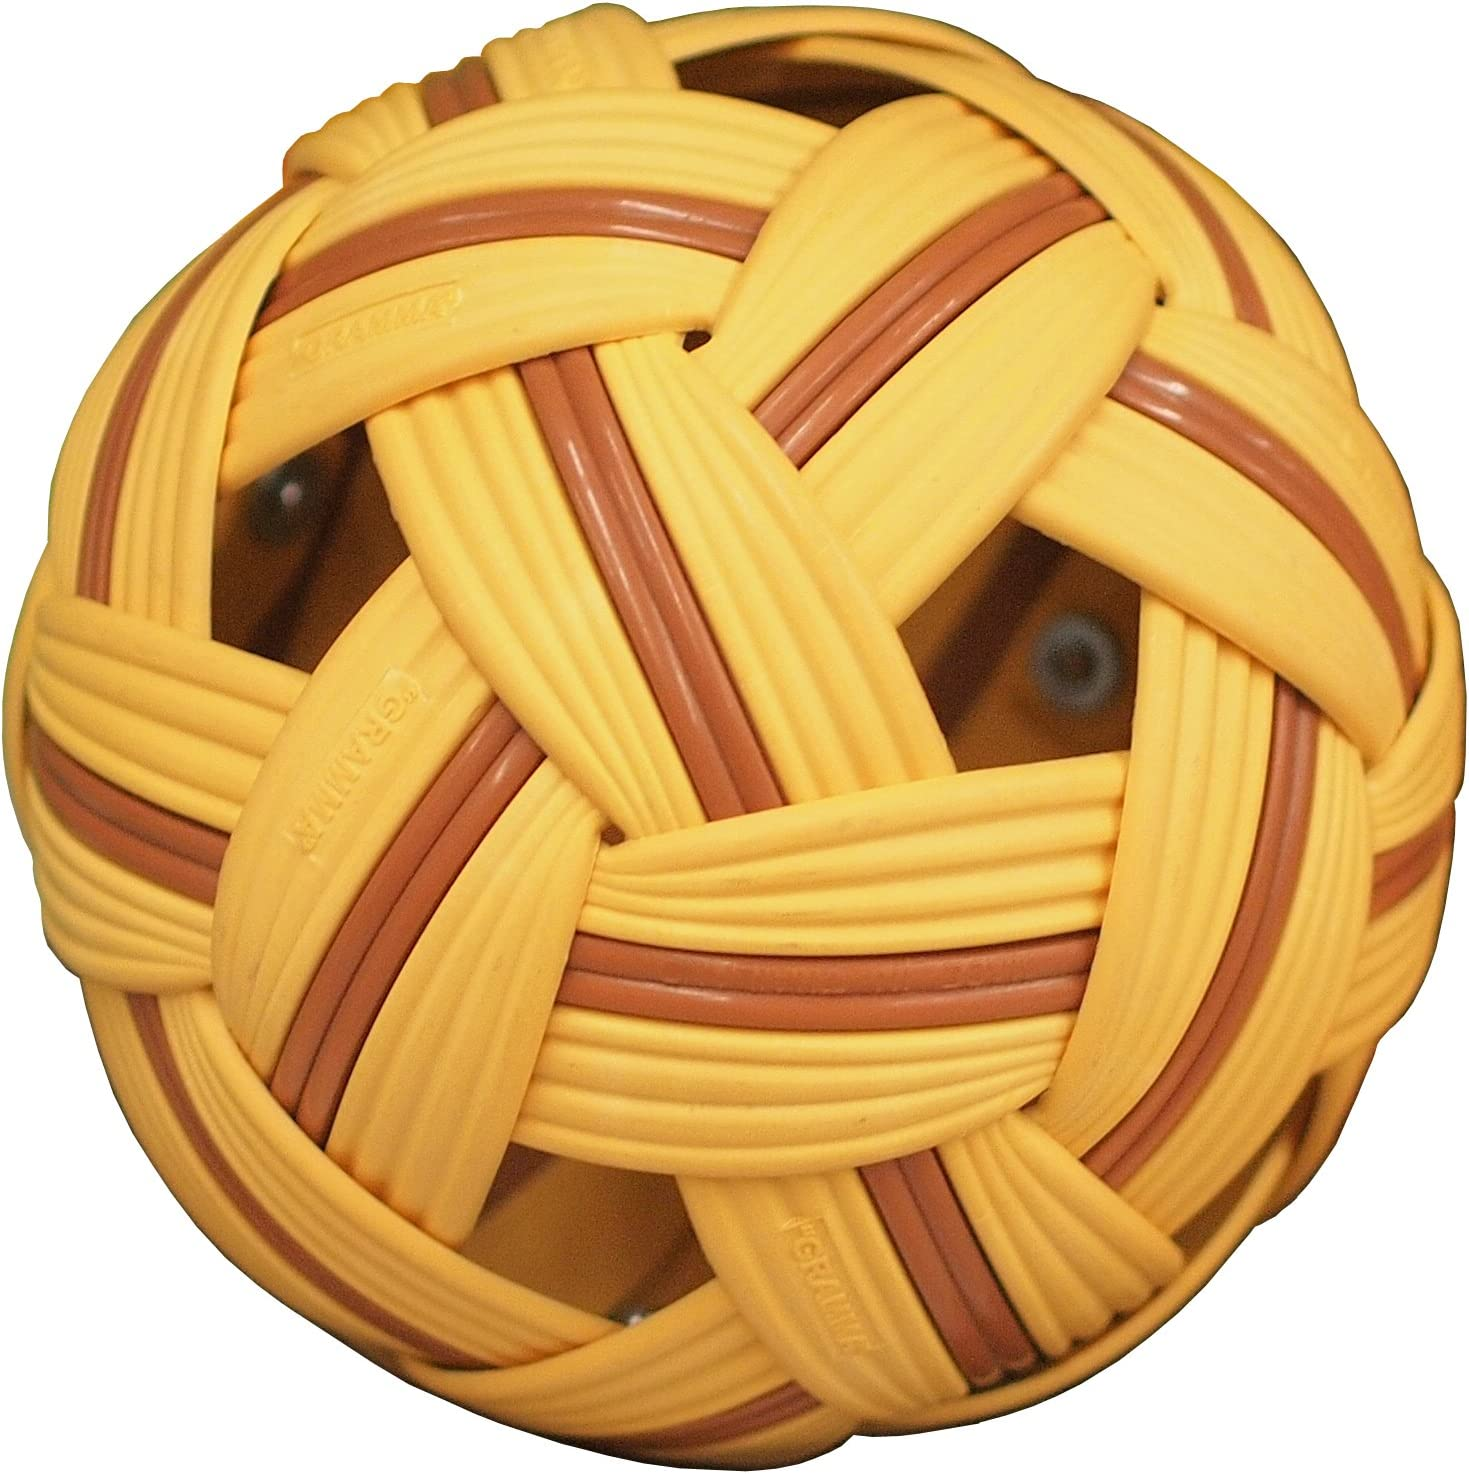 Gramma Online limited product Thai Sepak Takraw Volleyball Outstanding Foot Ball